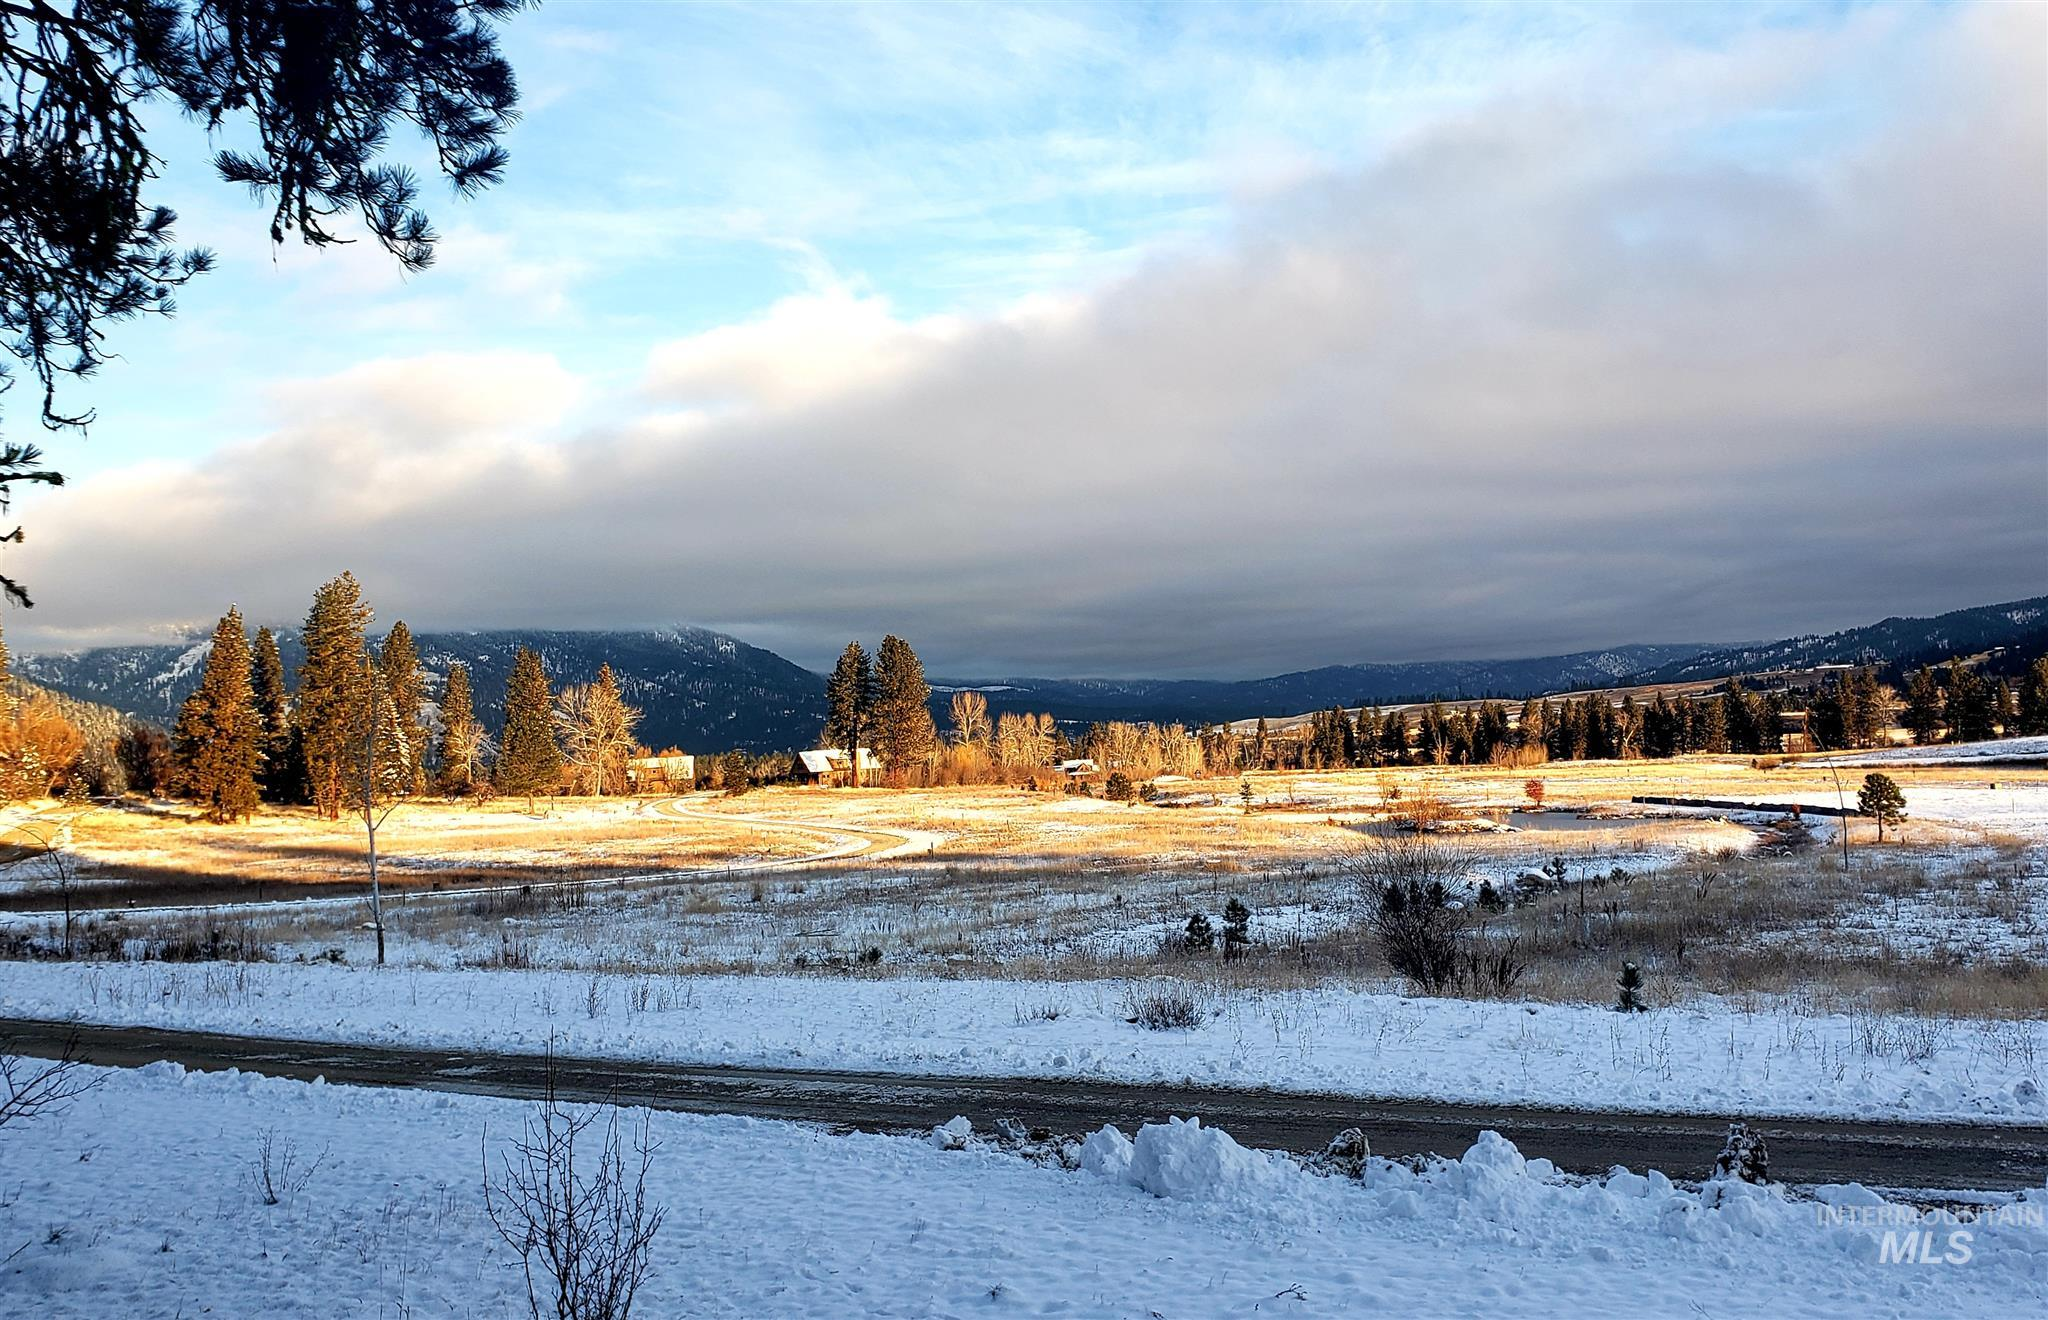 Lot 28 Blk 7 Wapiti Court Property Photo - Garden Valley, ID real estate listing